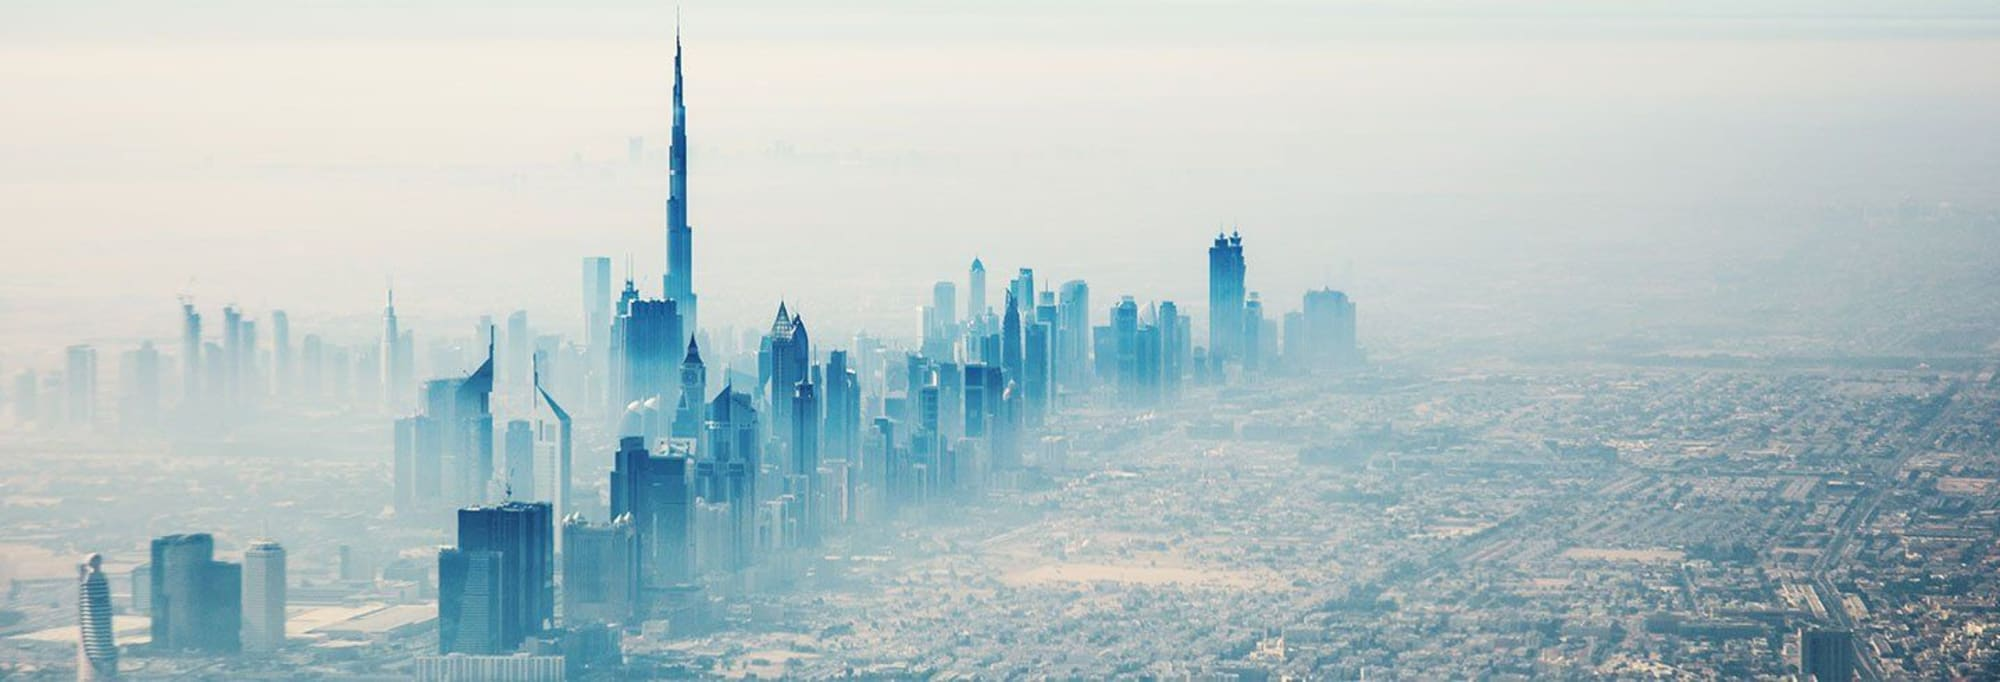 Background Image for Geolytix in Dubai